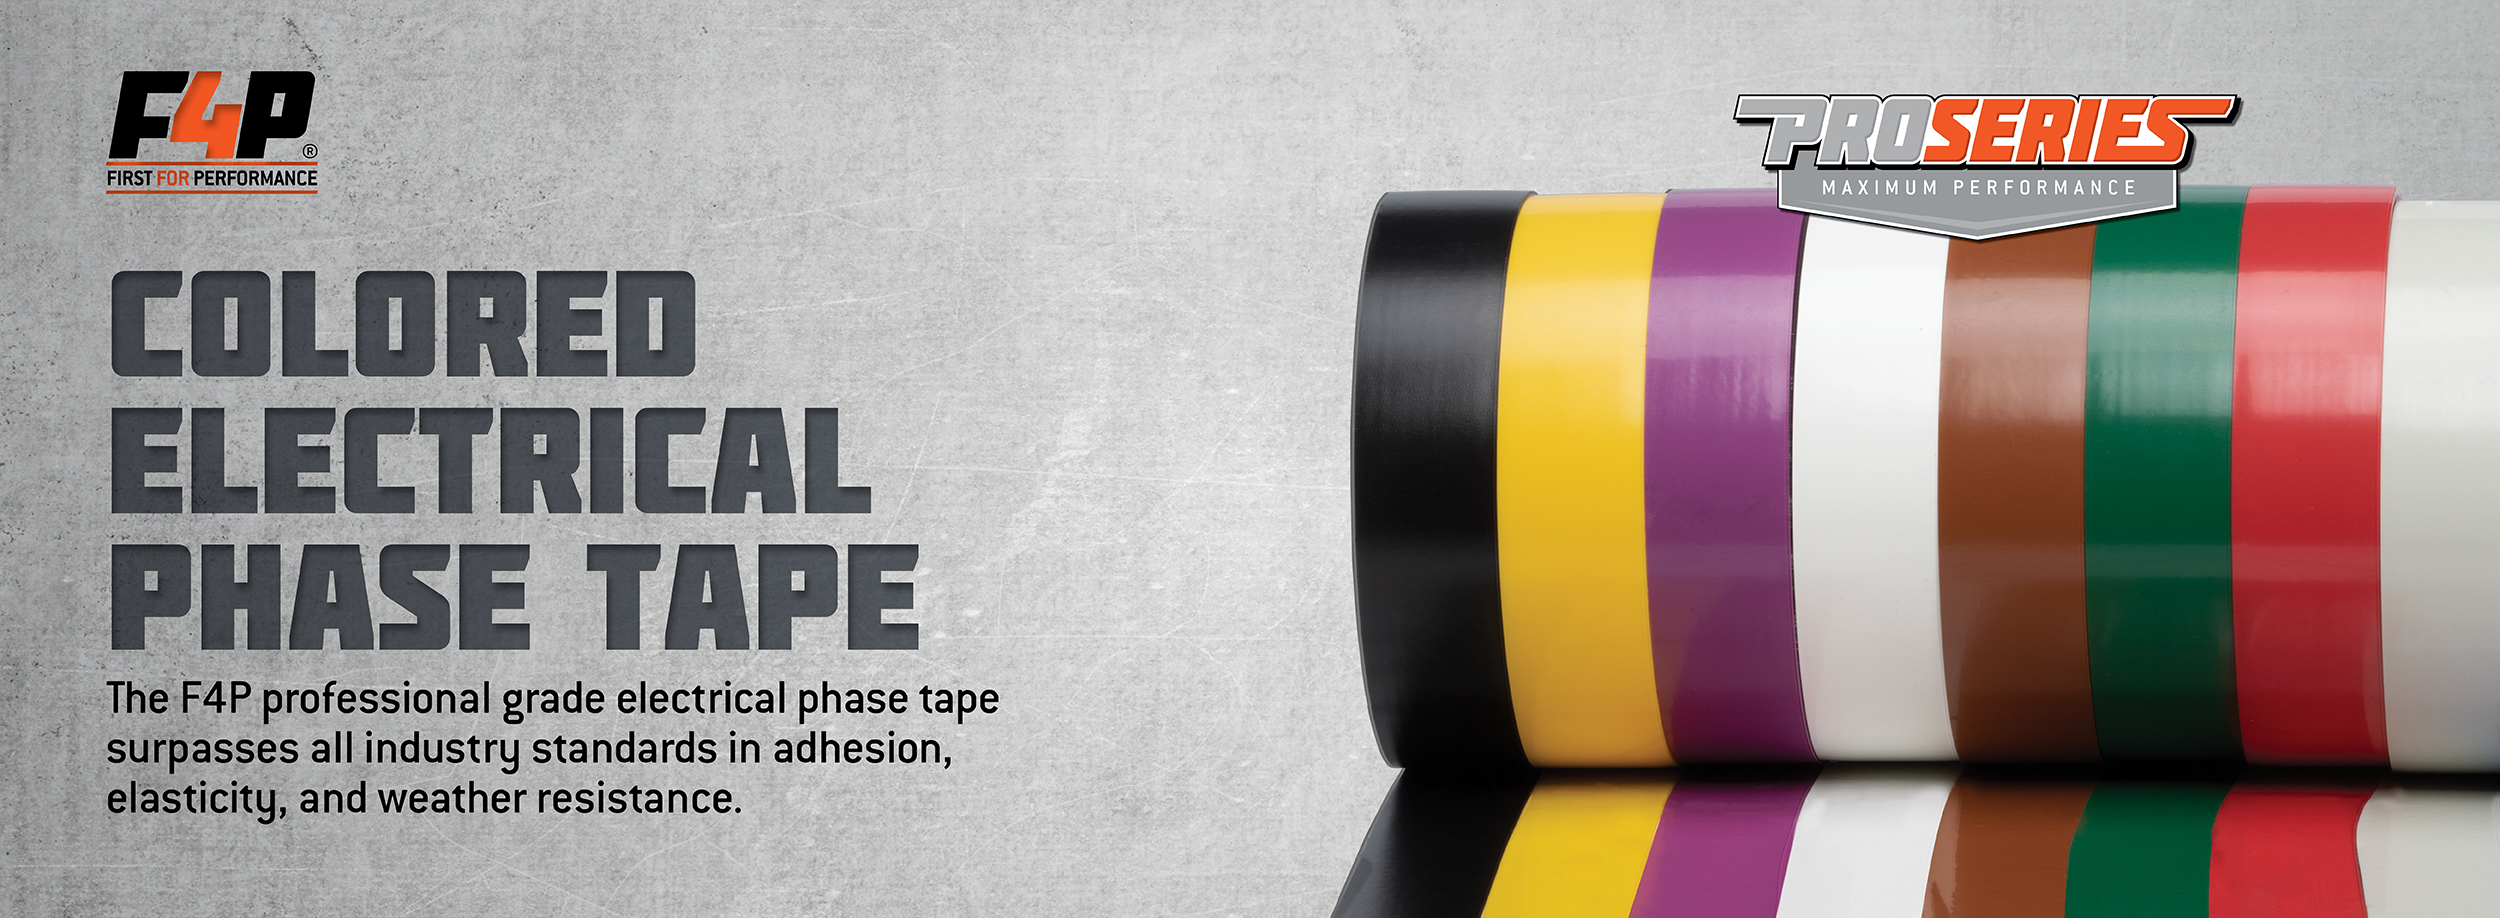 F4P Colored Electrical Phase Tape